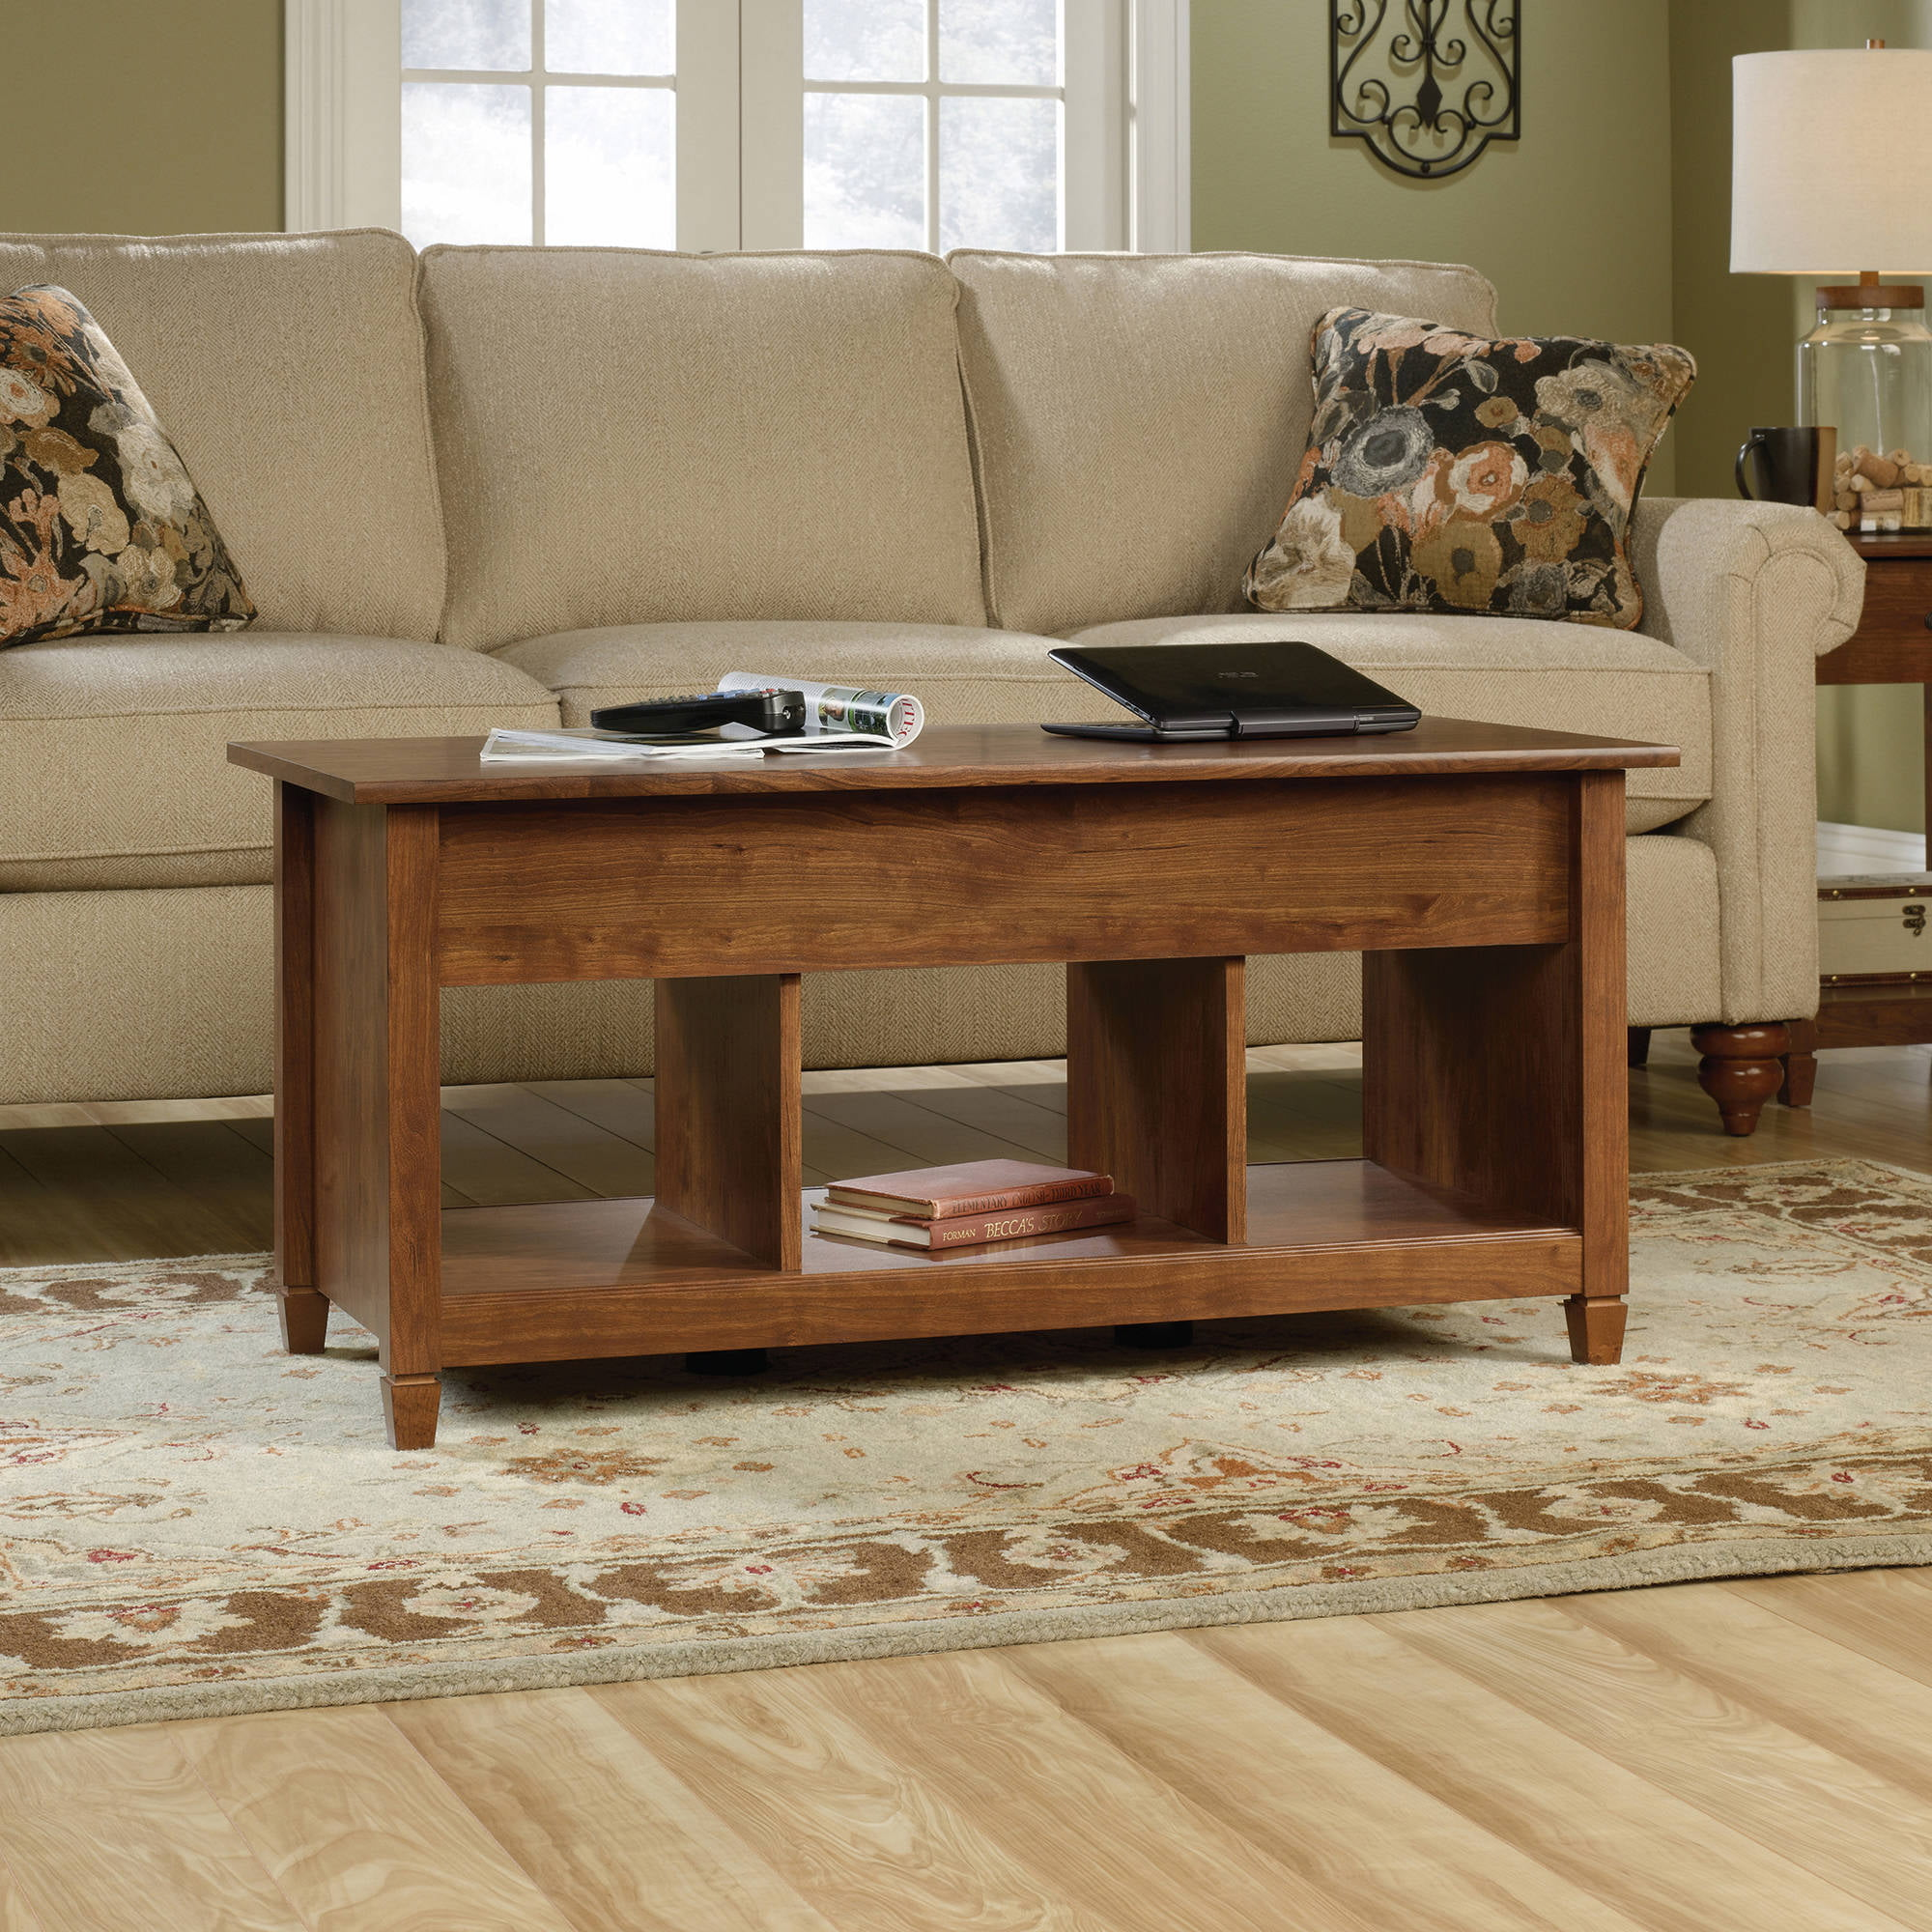 Ashley Mallacar Rectangular Coffee Table in Black Walmart